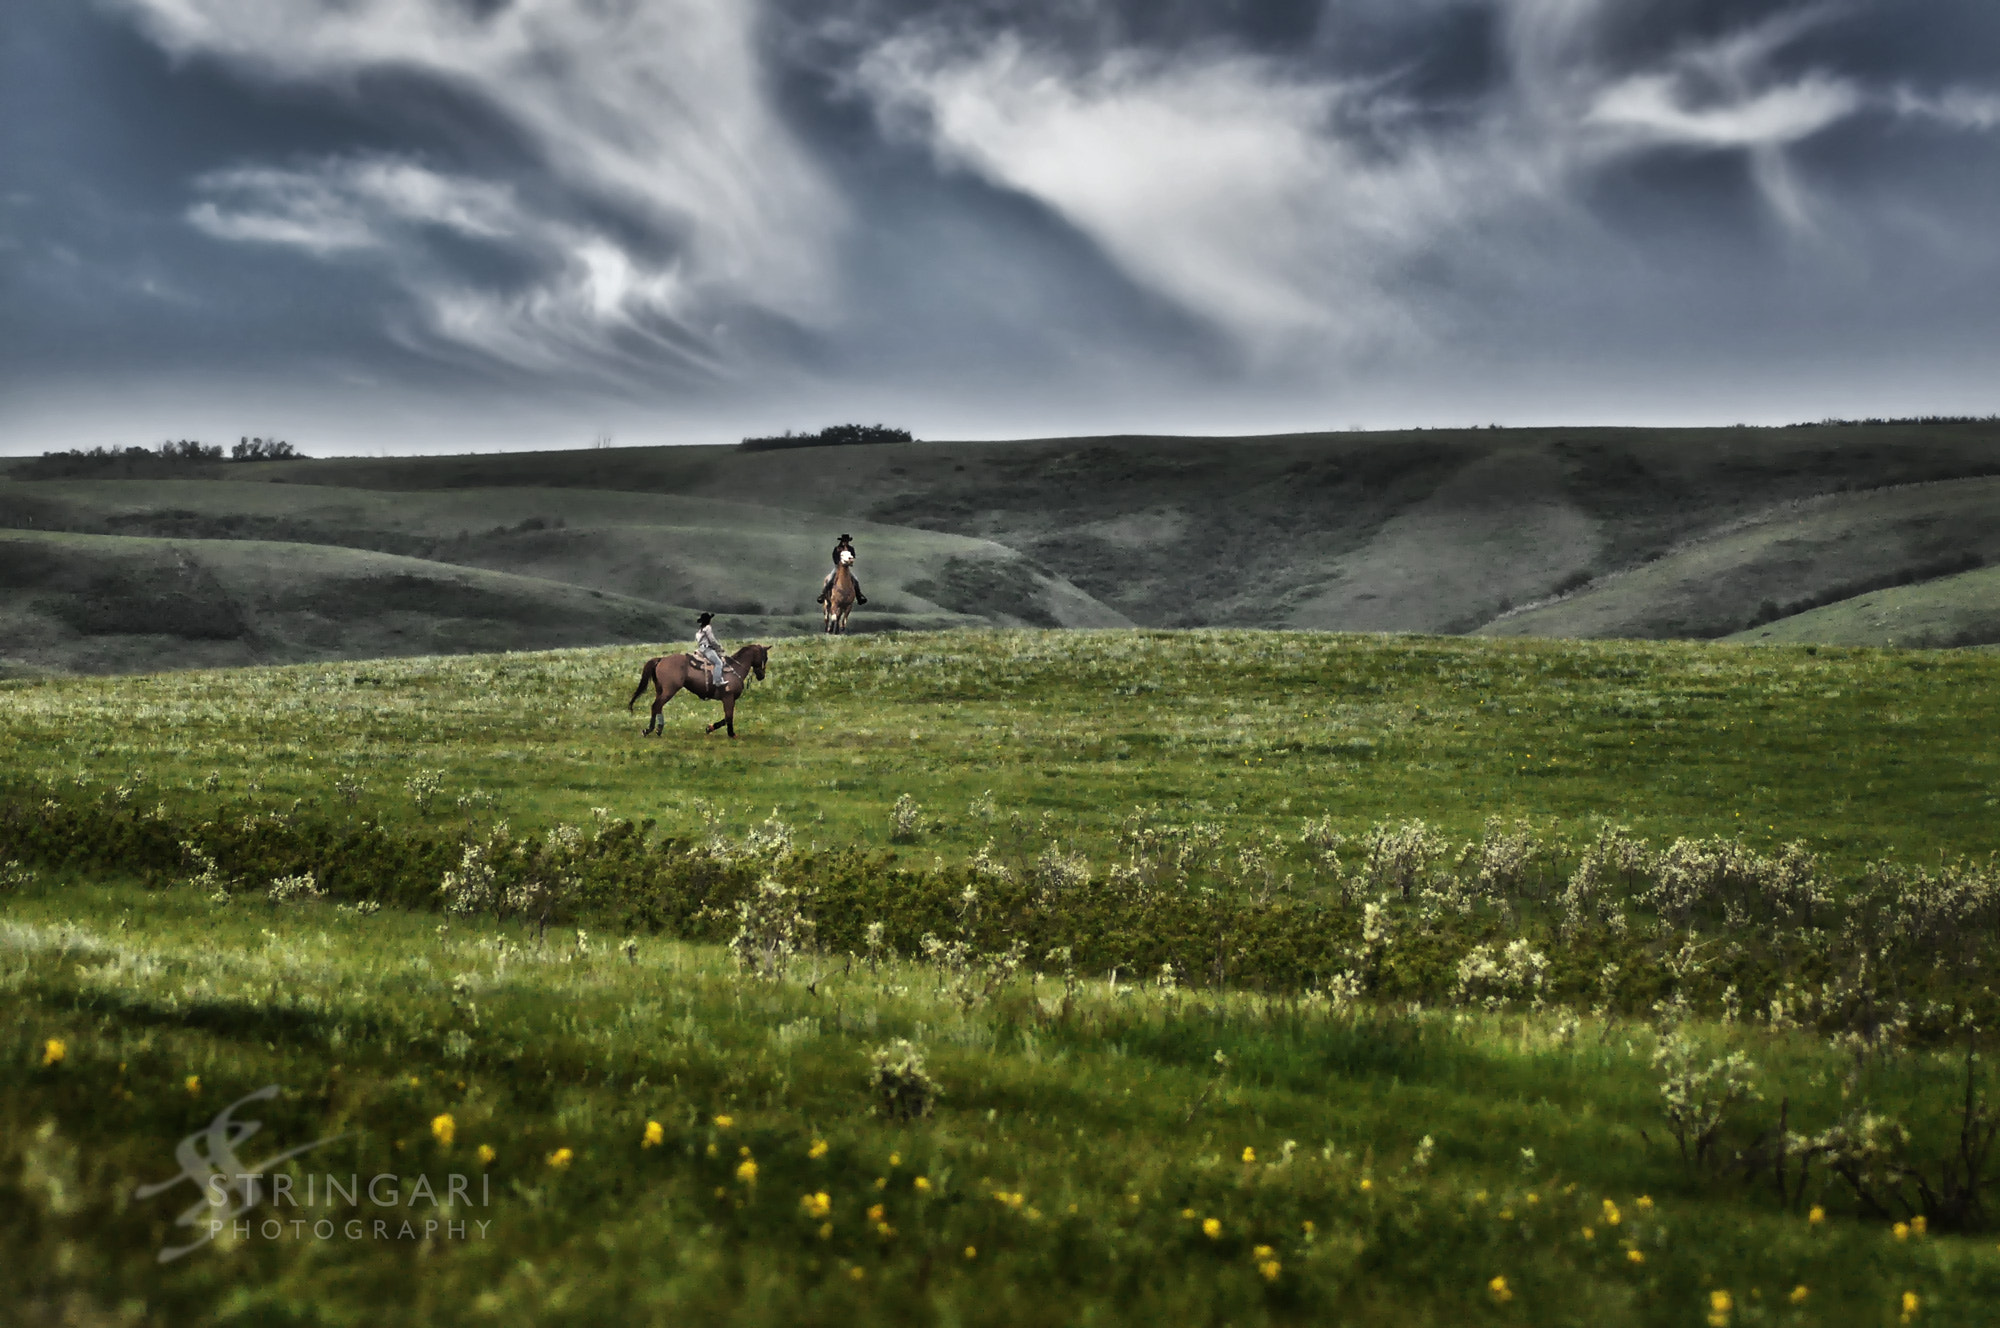 Photograph Riding on the Prairie by Carla Stringari Pudler on 500px